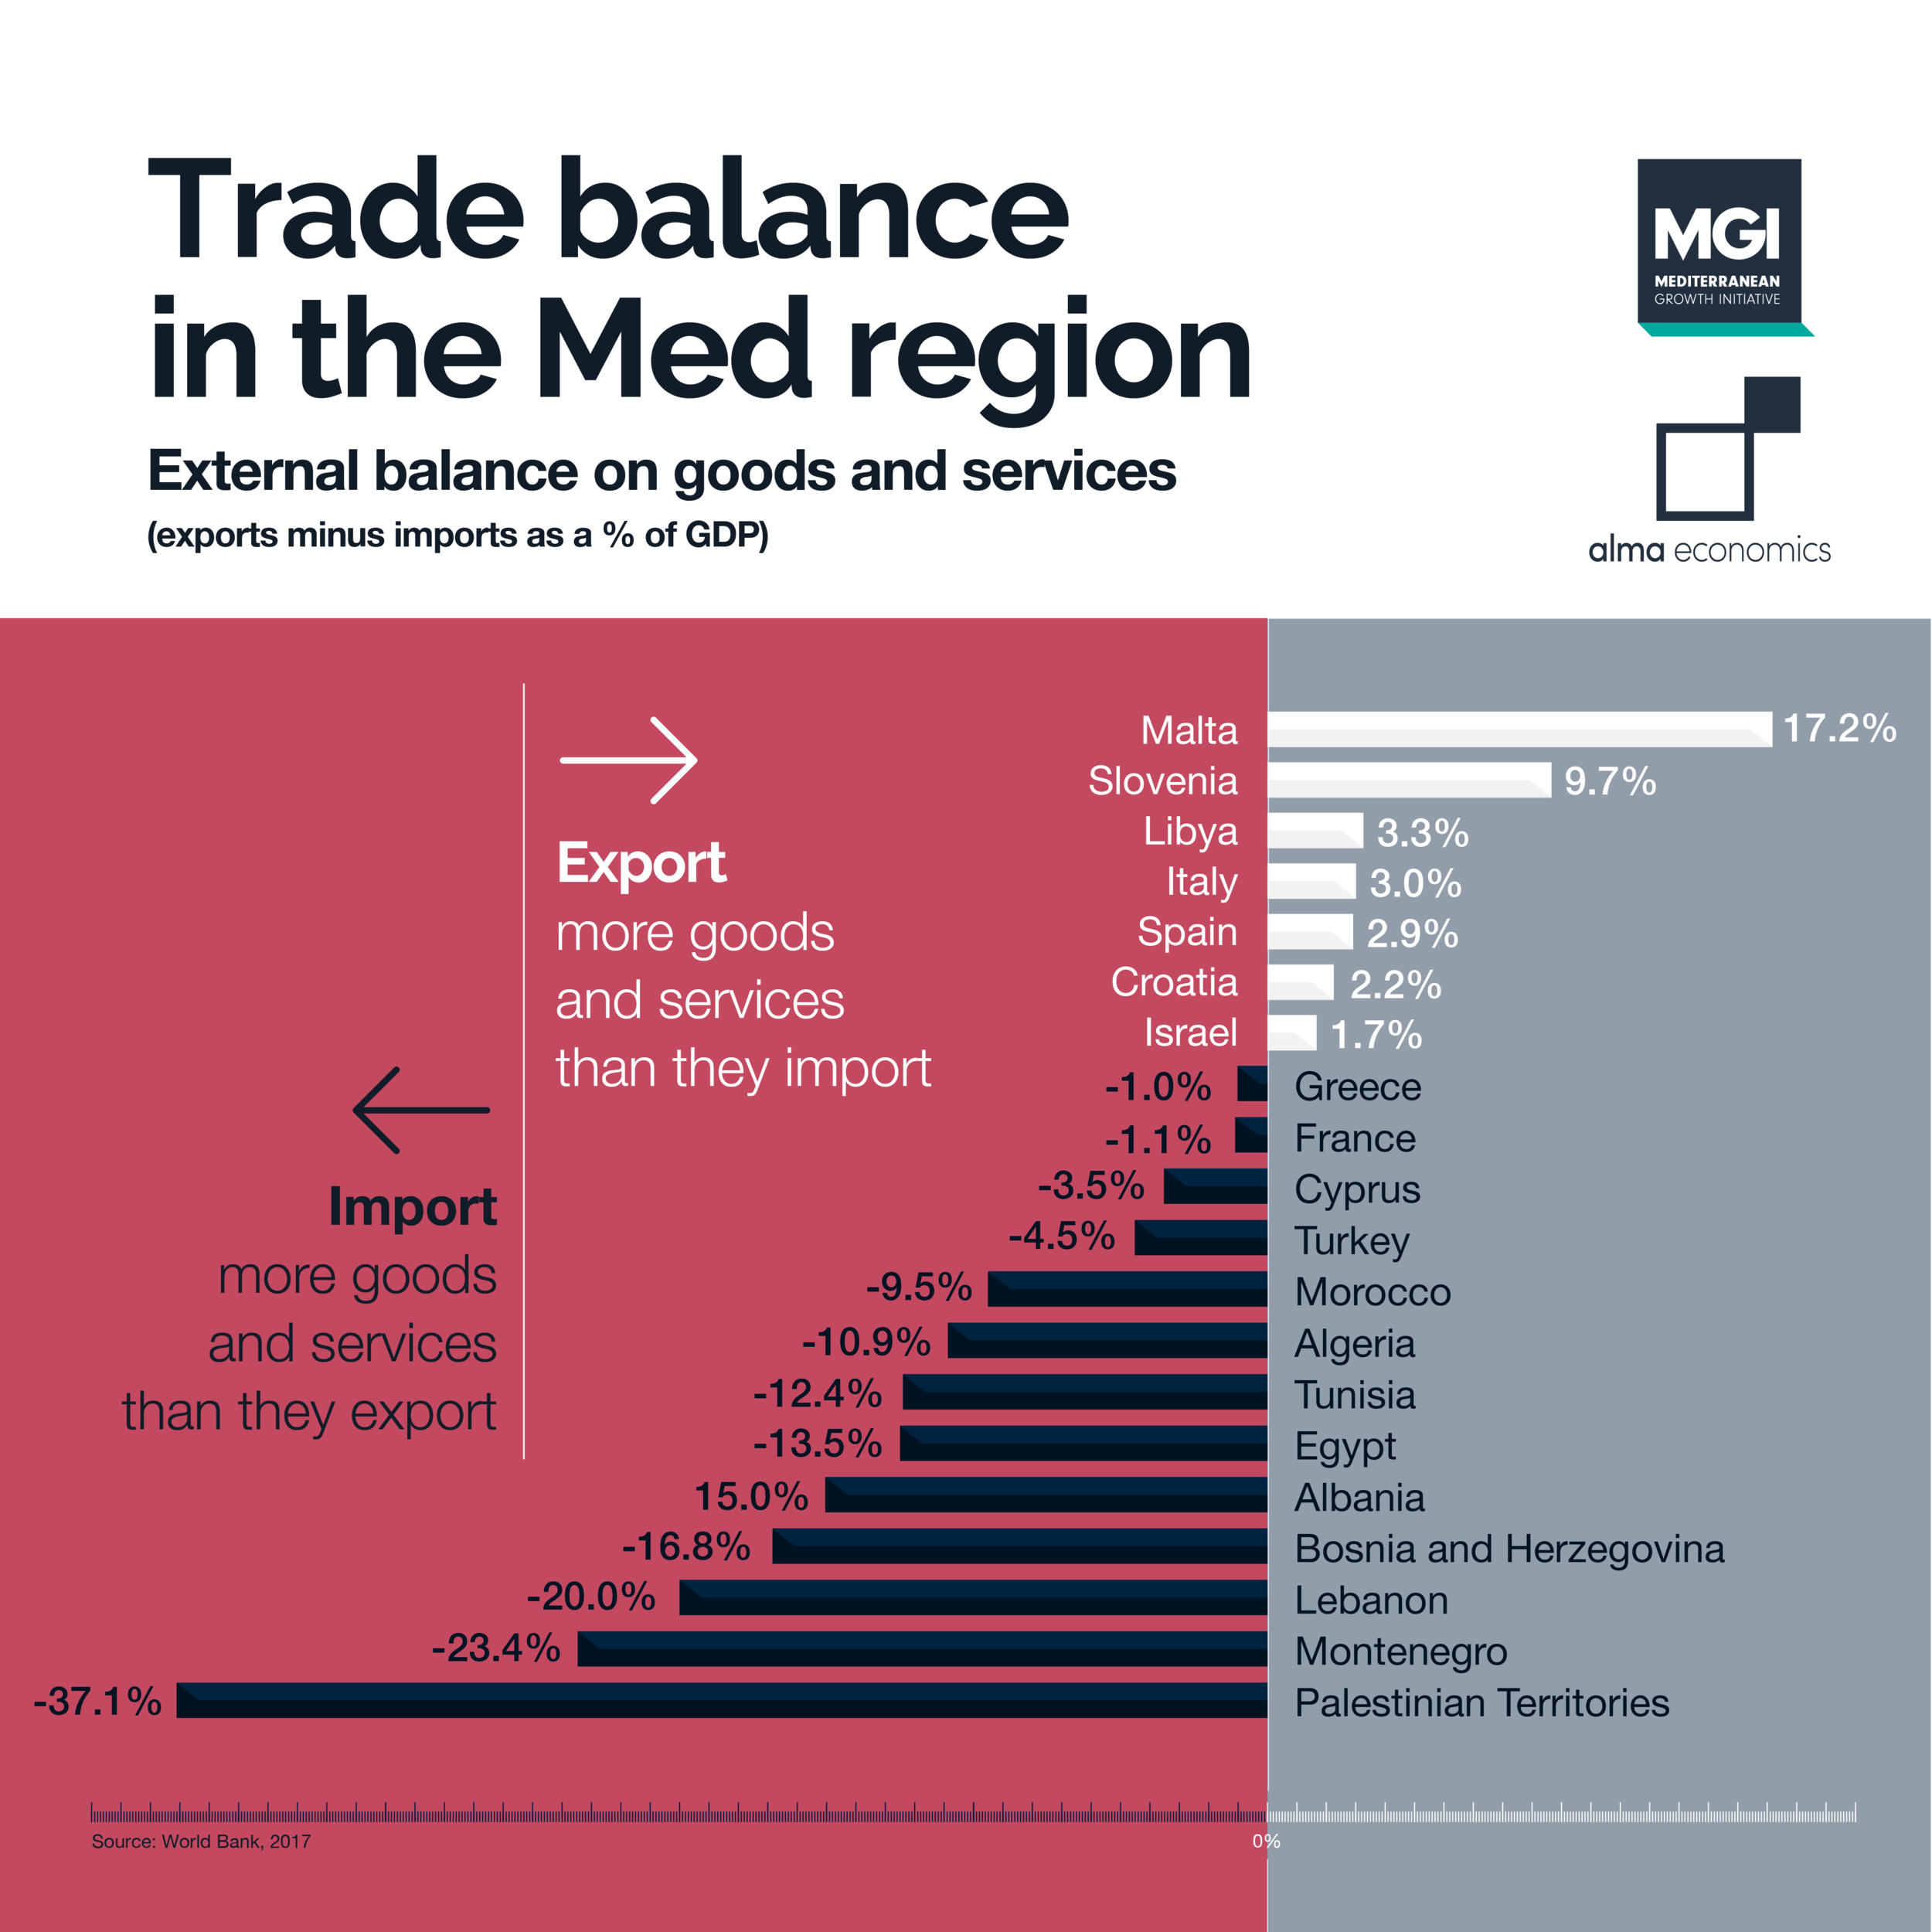 Trade balance in the Med region - Malta and Slovenia had the largest trade surplus while Montenegro and Palestinian territories had the largest trade deficit in 2017